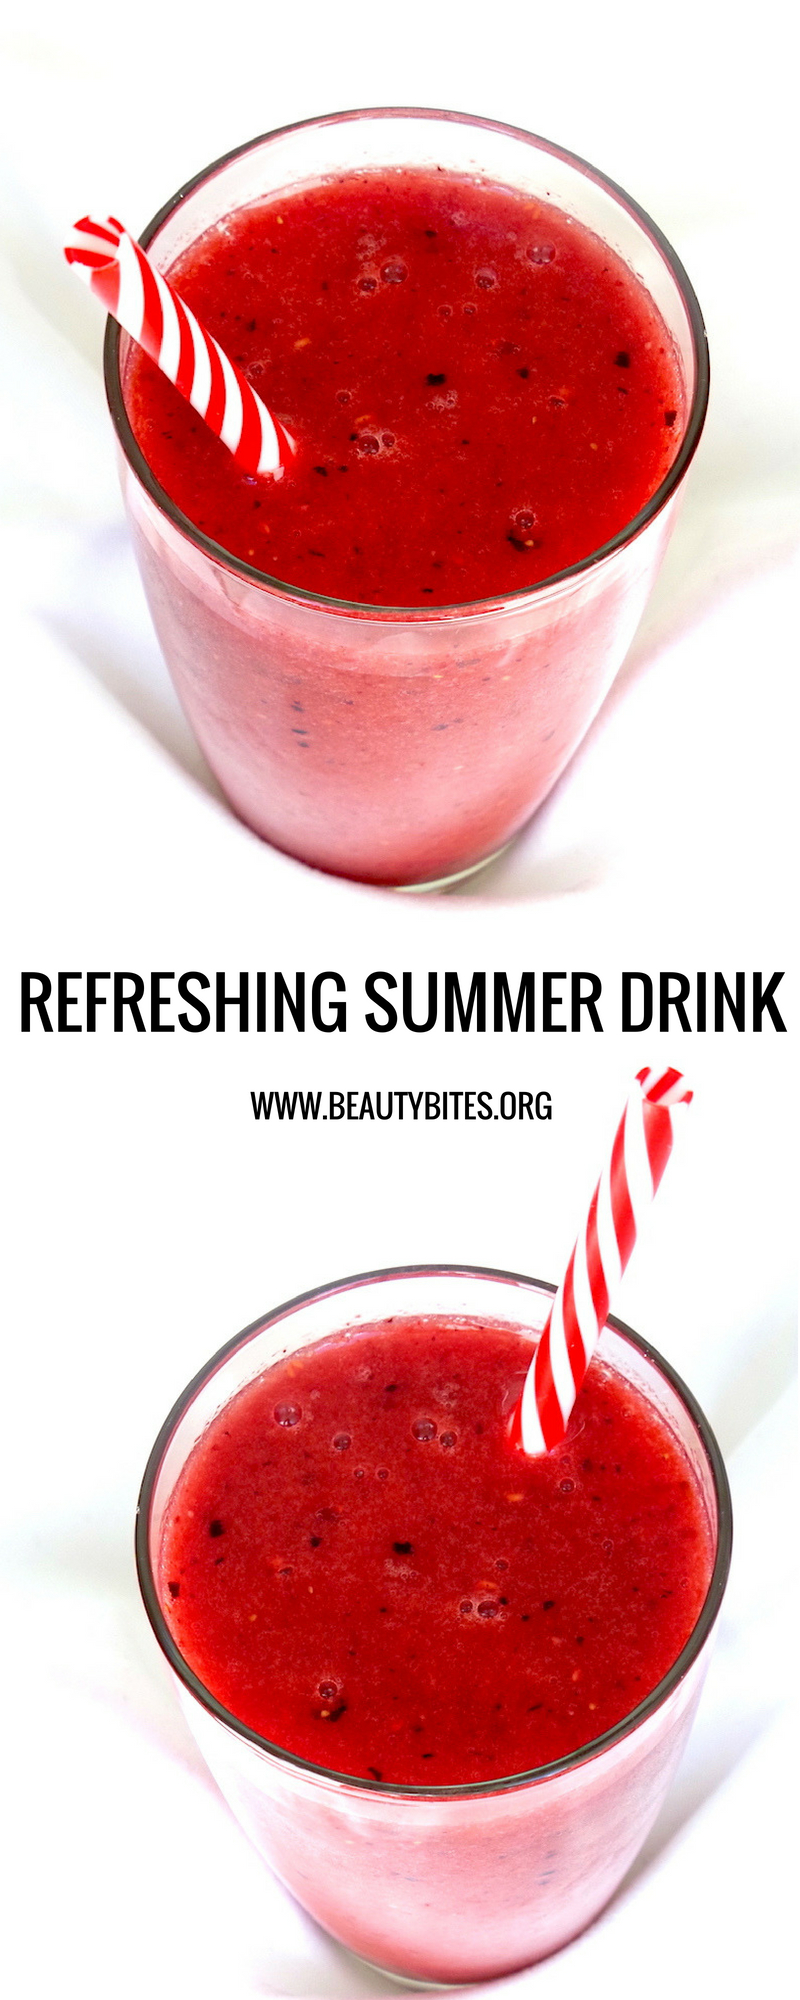 Healthy Watermelon Smoothie Recipe with Strawberries - a tasty and refreshing healthy summer drink   www.beautybites.org